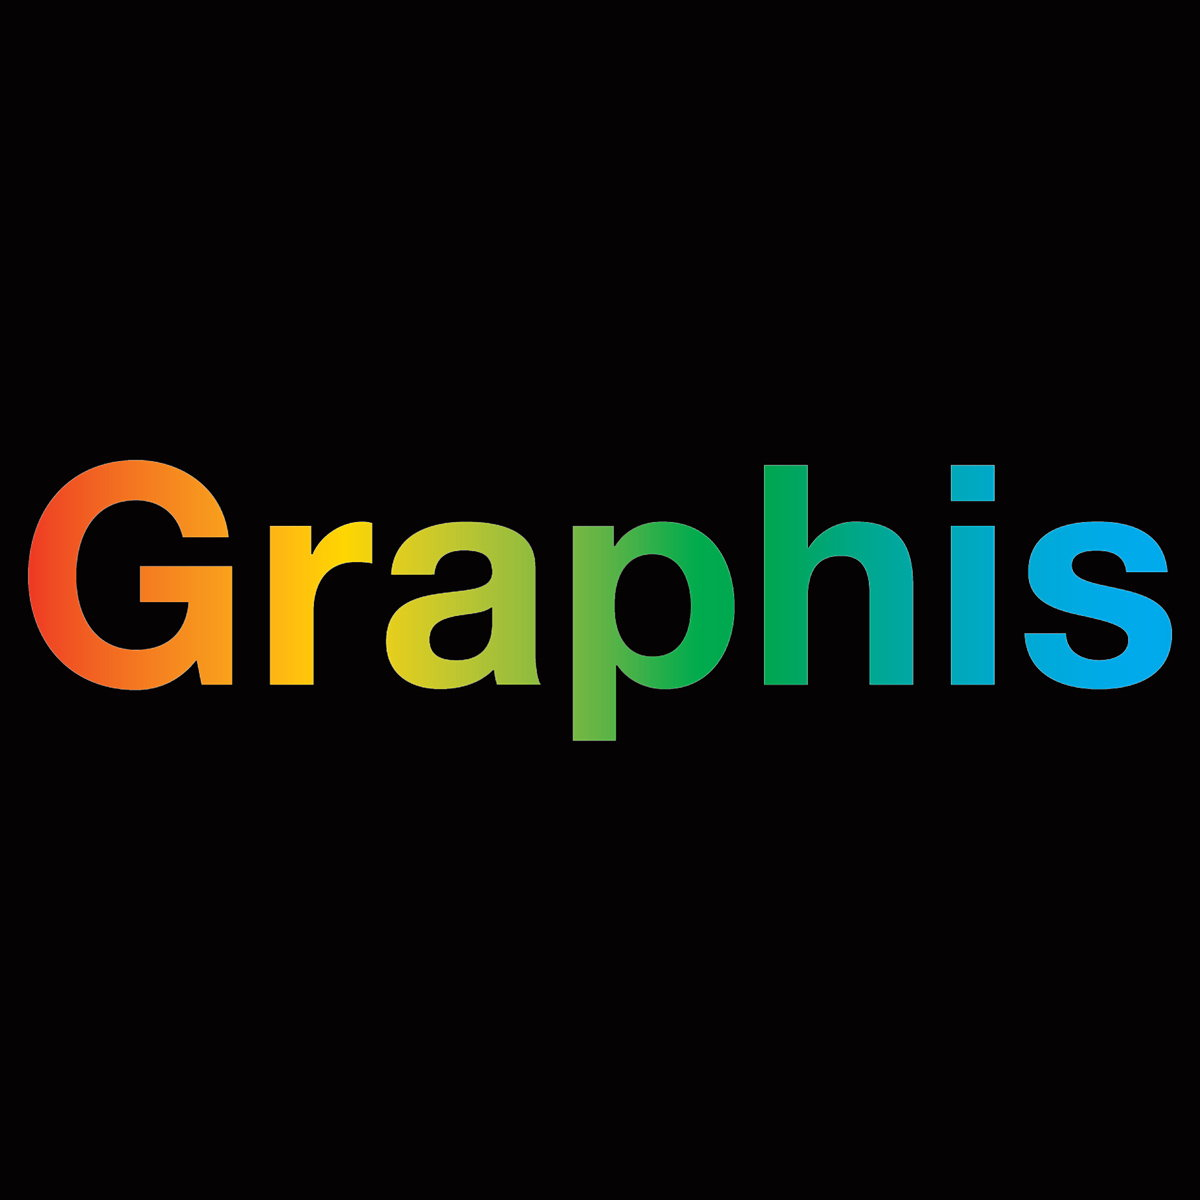 Graphis Design Annual 2018 - Call for Entries